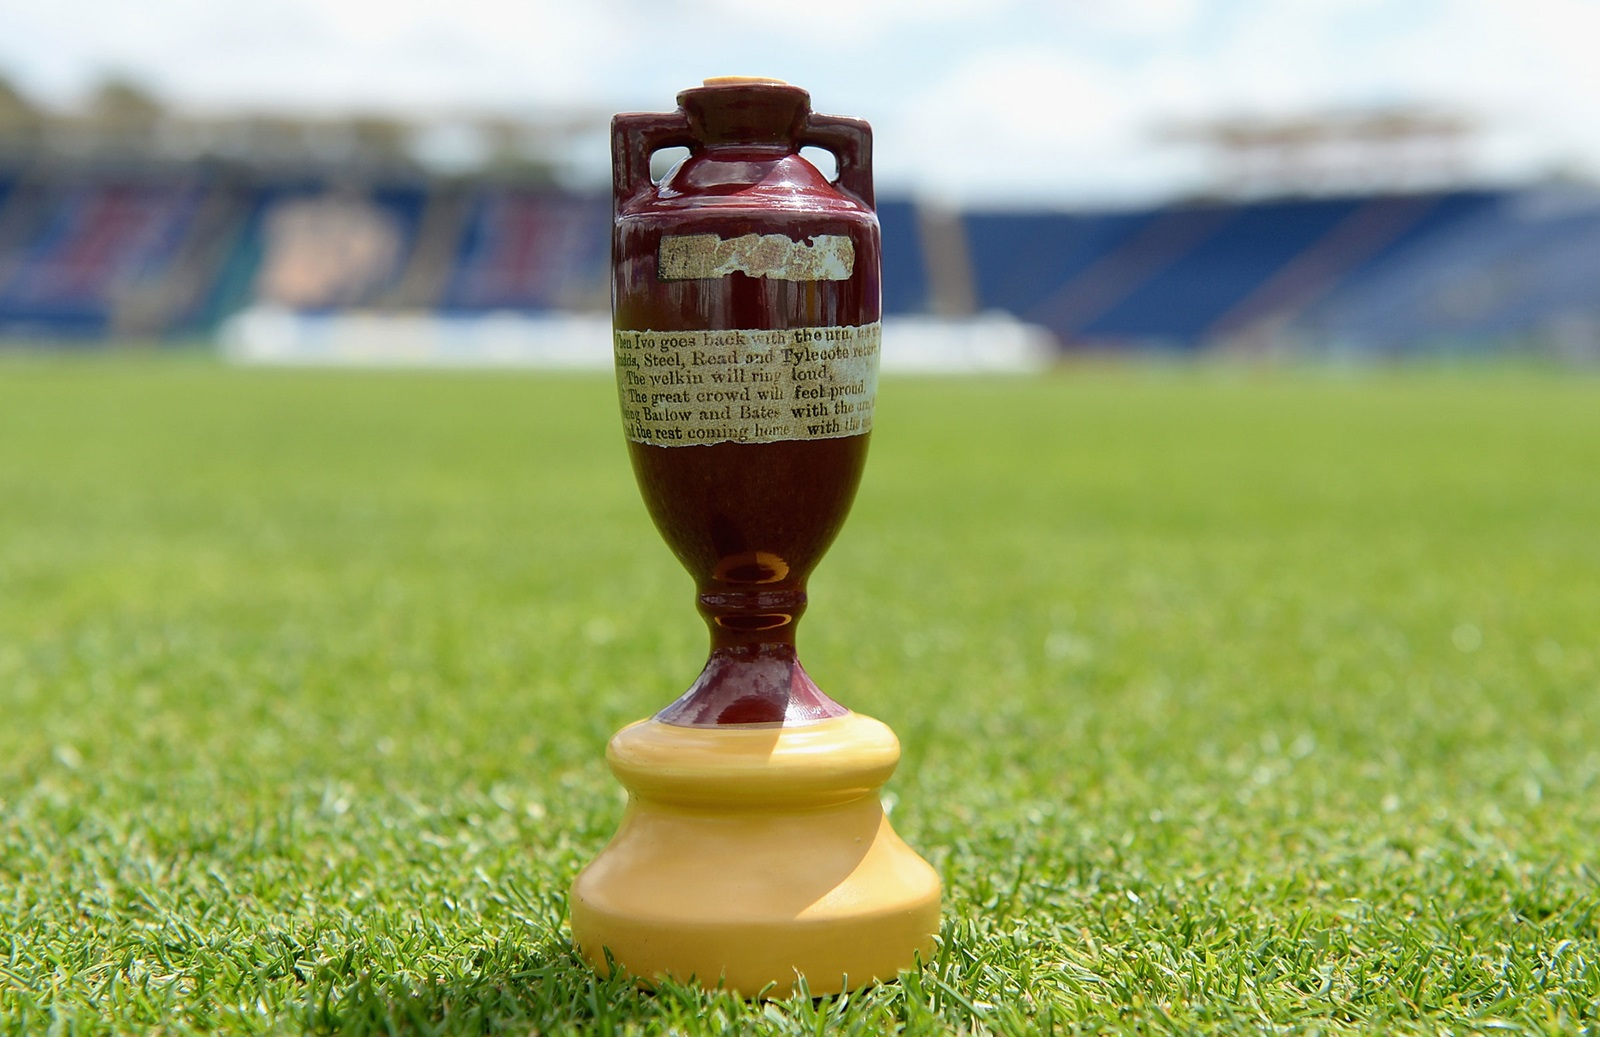 The Ashes 2019 Urn